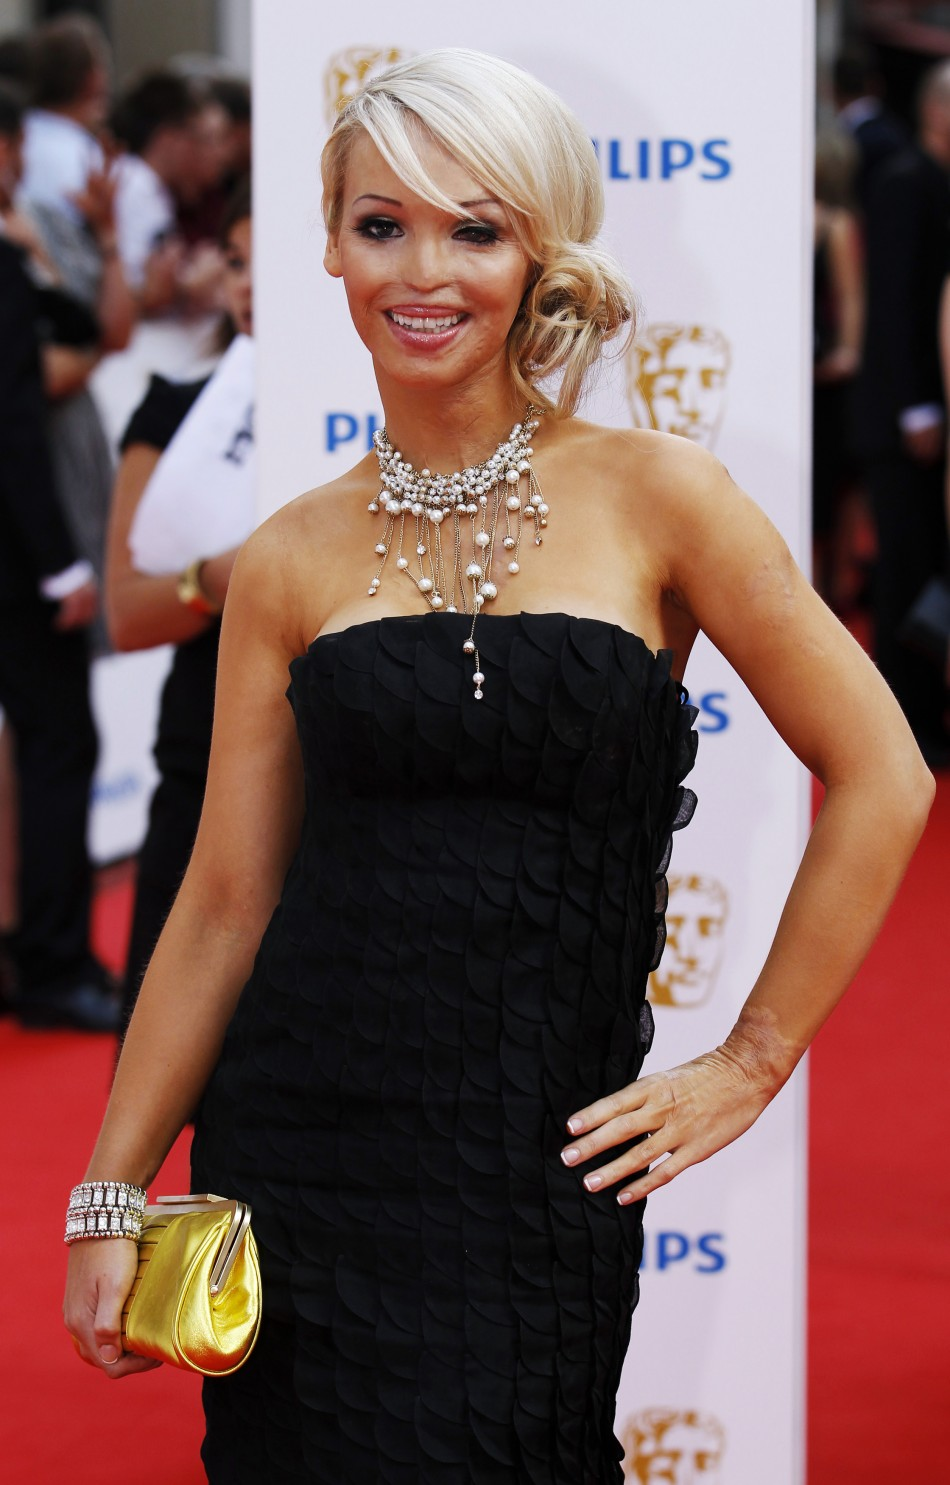 Model Katie Piper